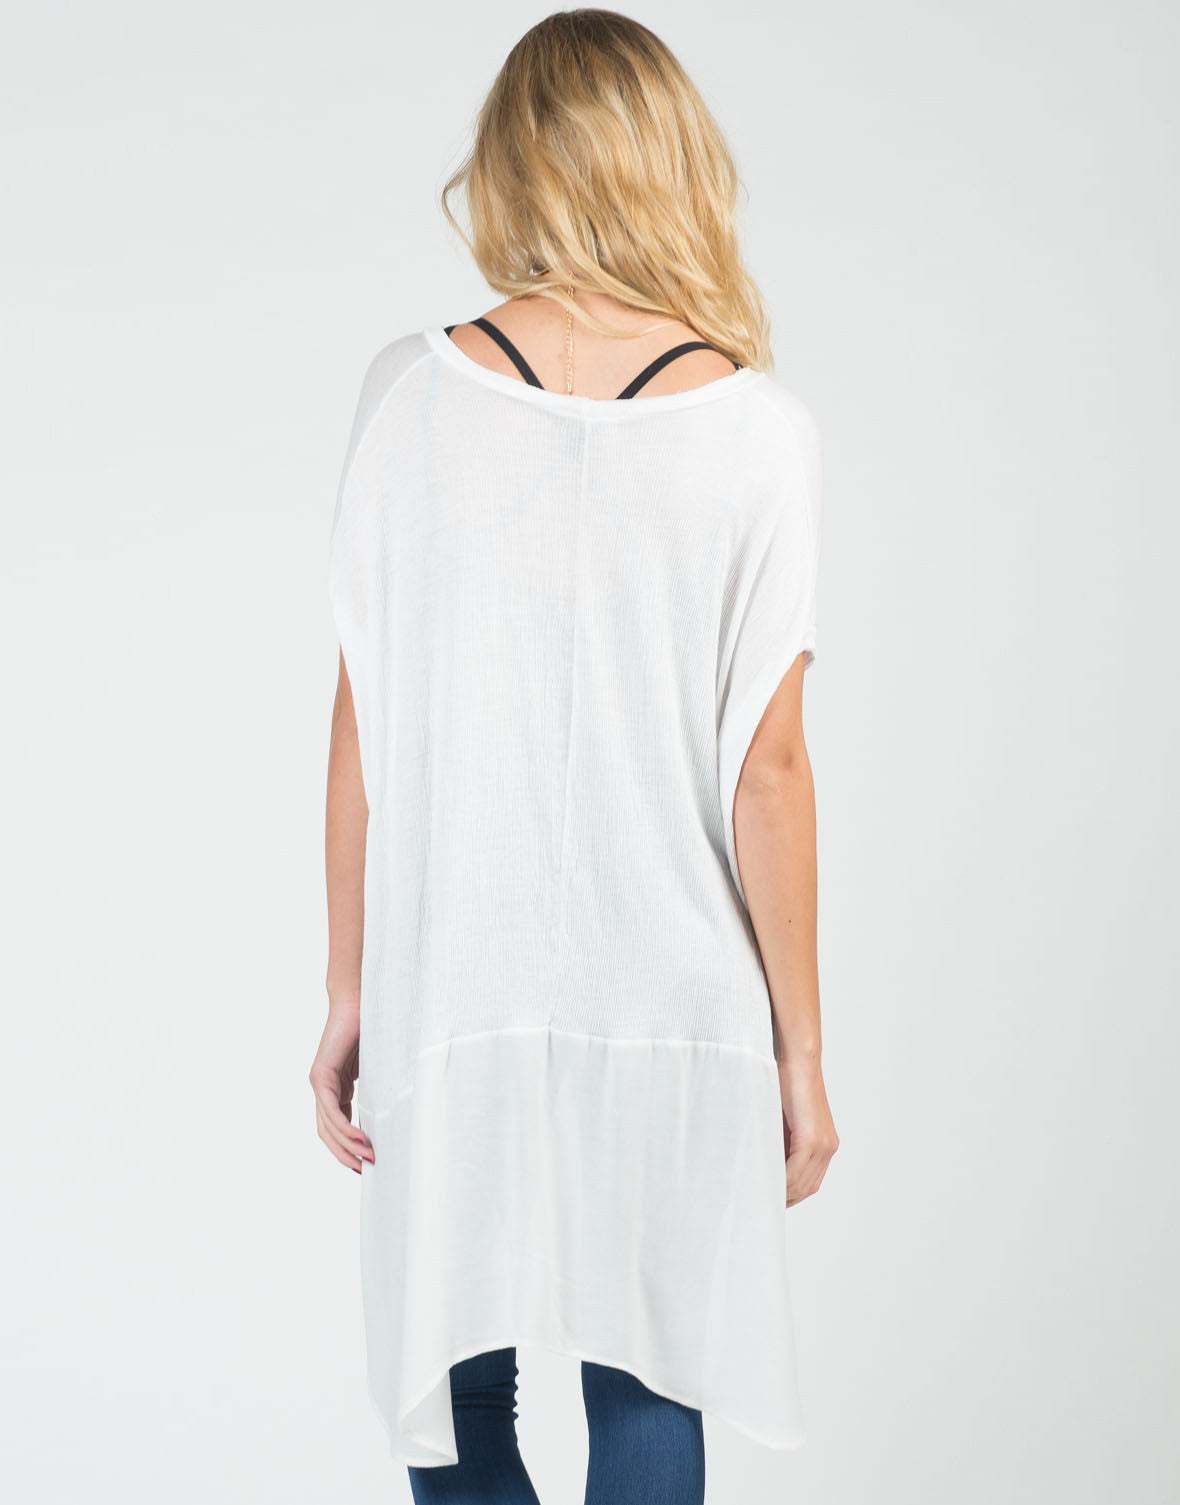 Back View of Breezy Boxy Flowy Tee